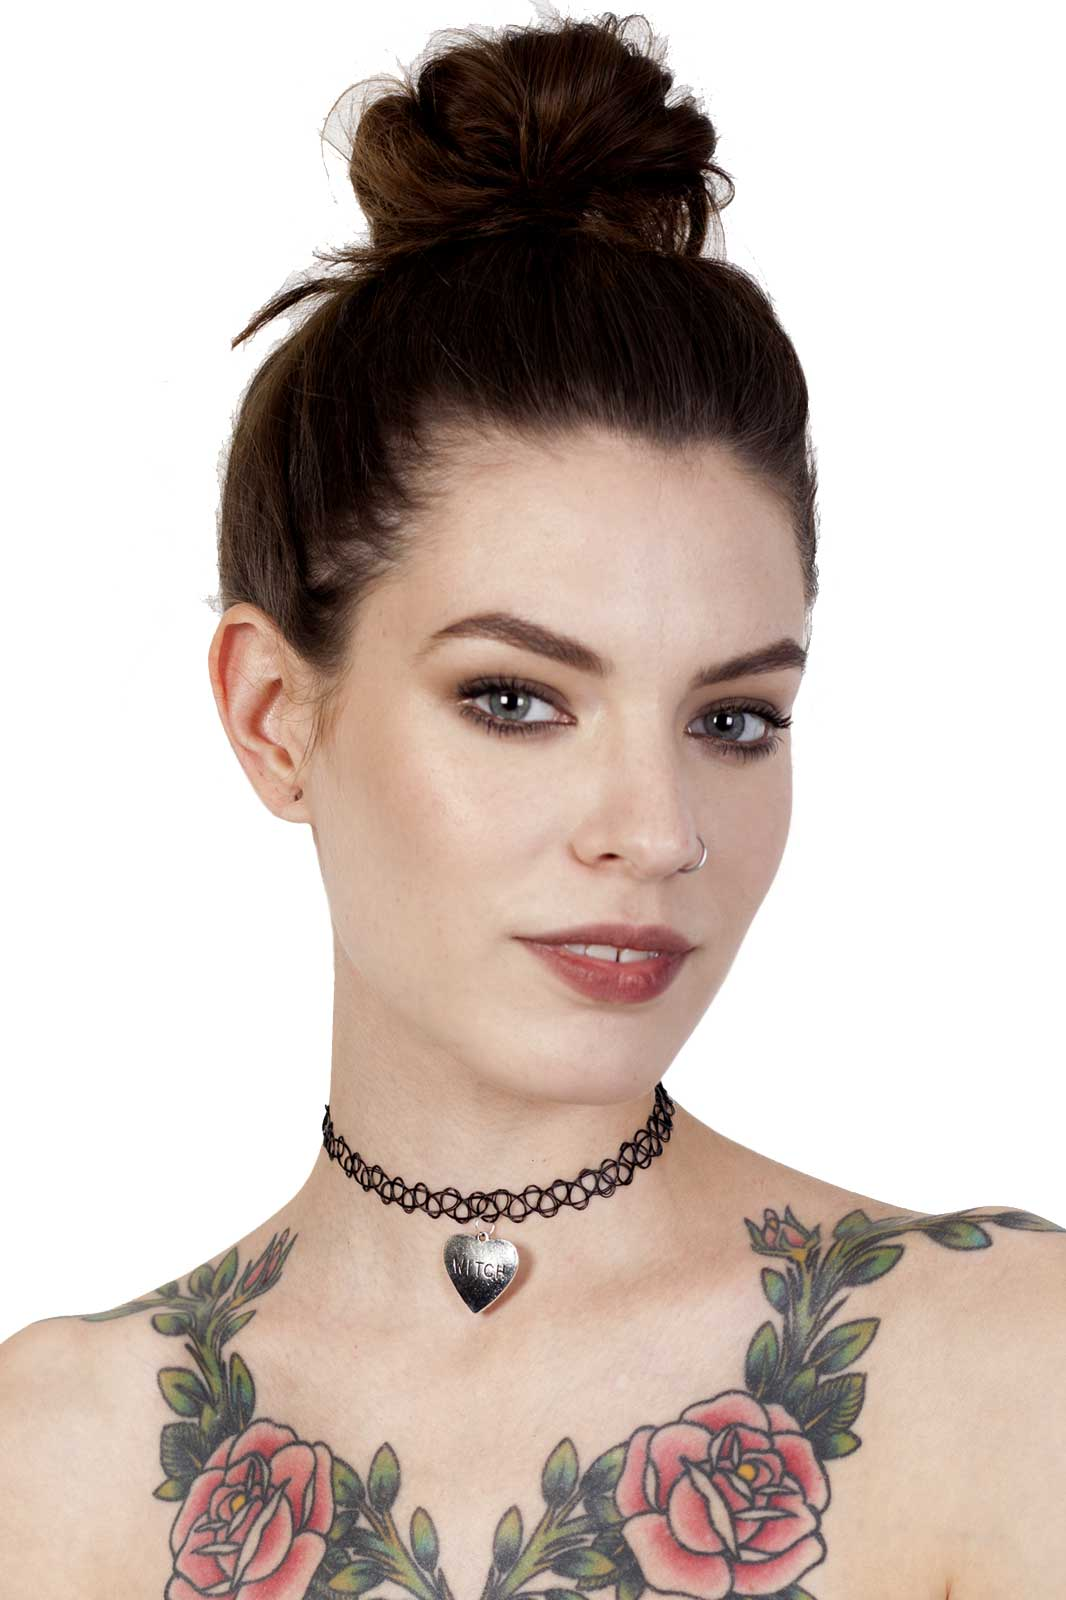 Witch Heart Charm Tattoo Choker